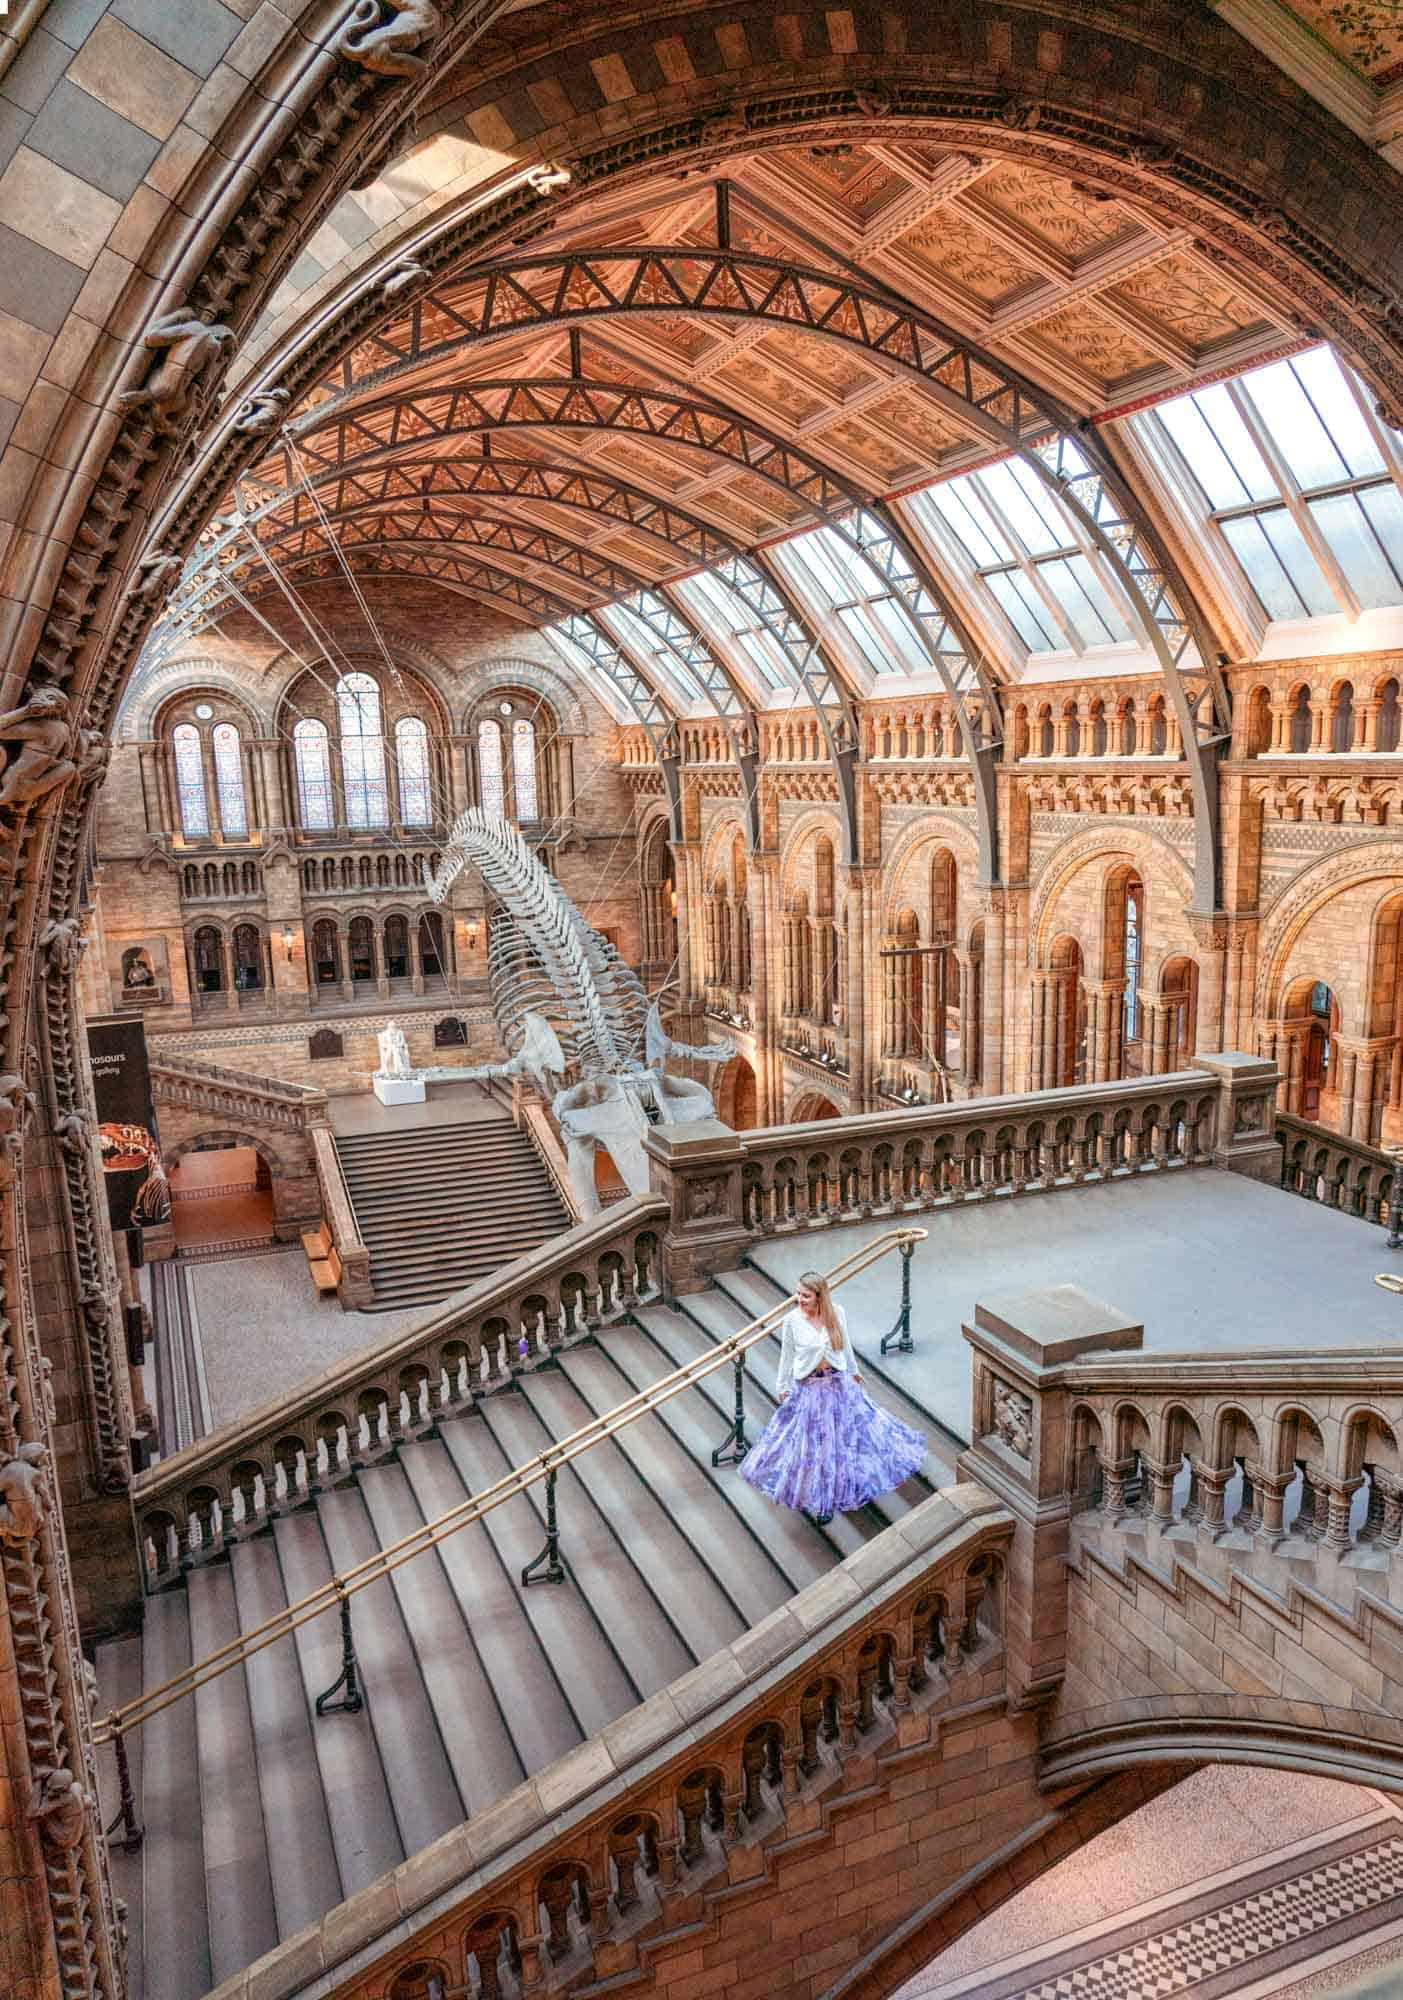 The inside of the impressive London landmark, the Natural History Museum showing the entrance hall and whale skeleton.